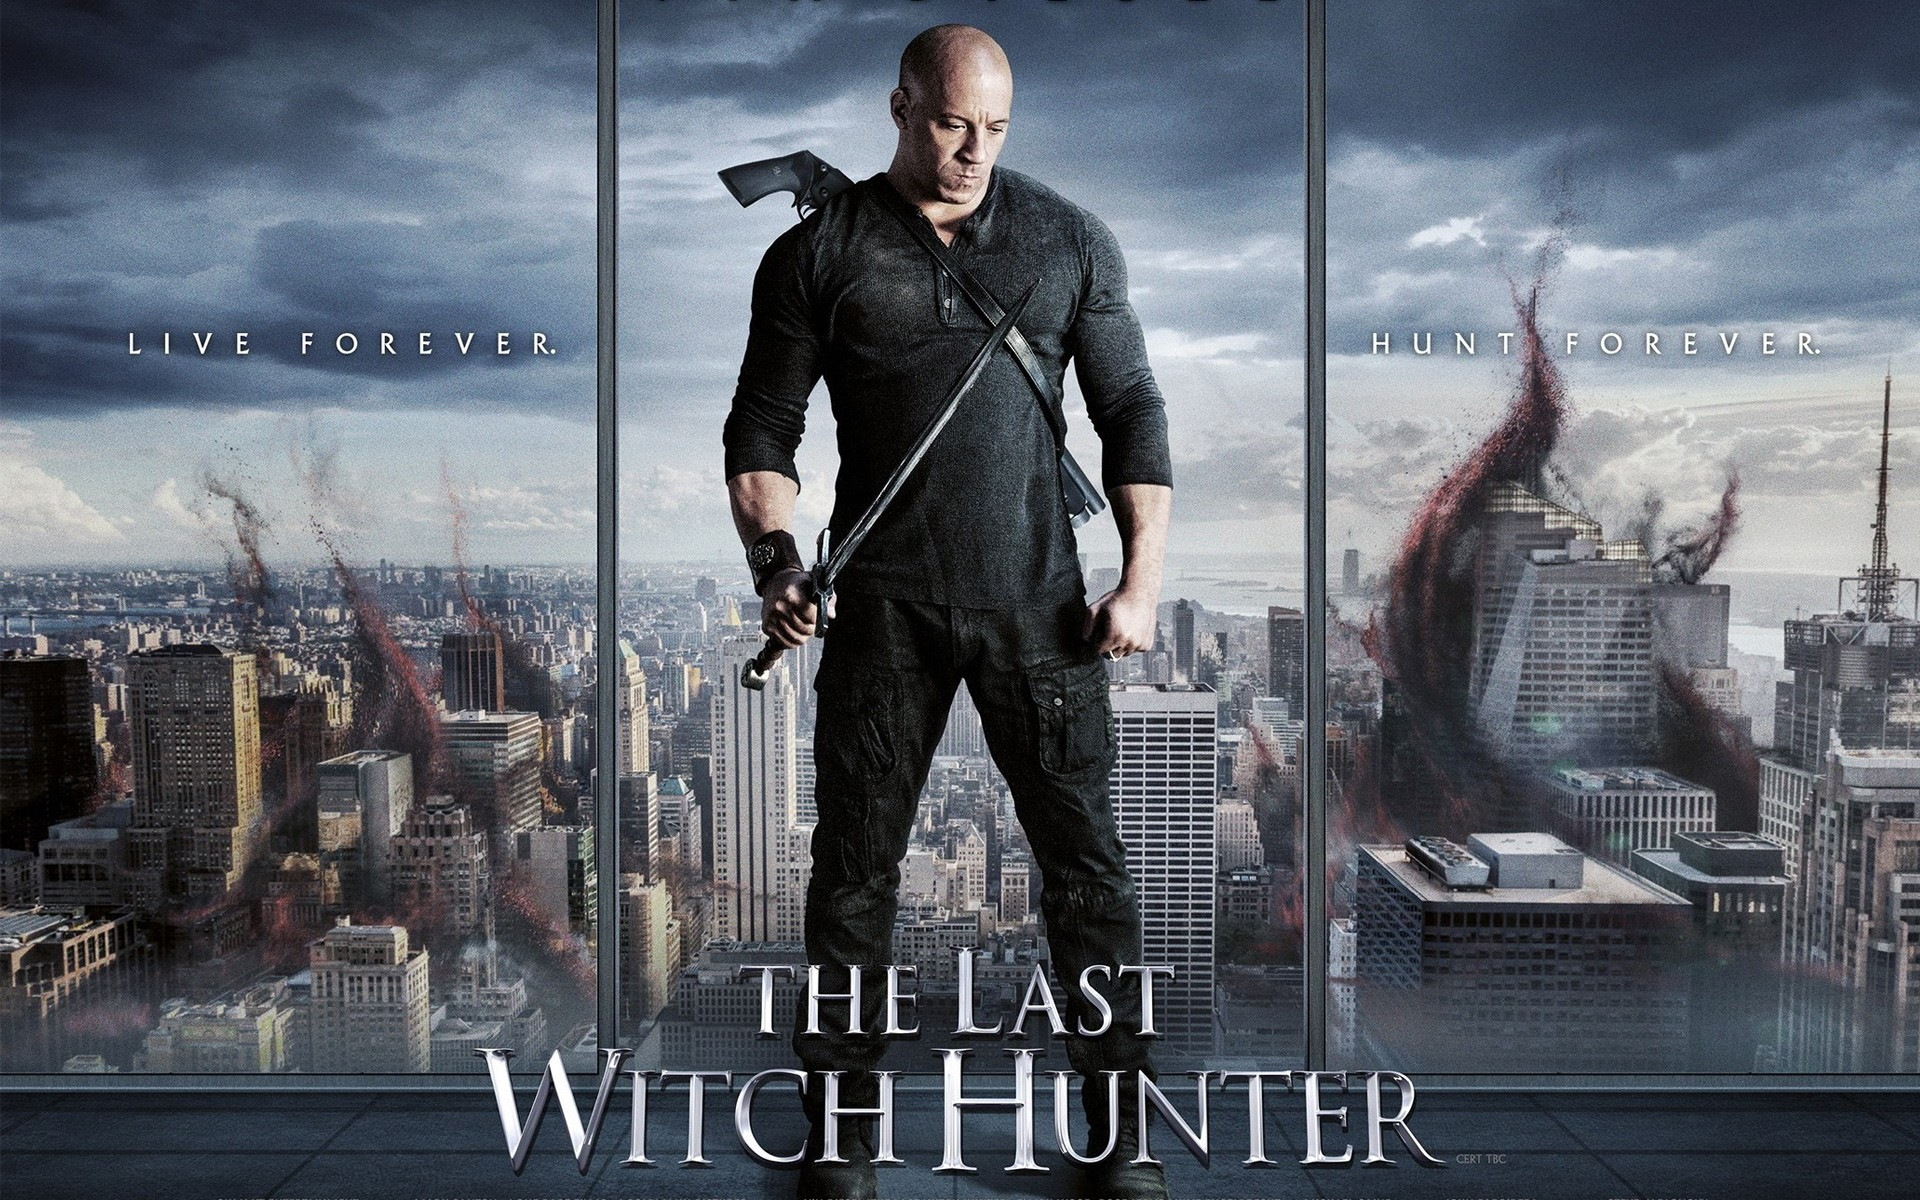 Smurfs 3d Wallpaper The Last Witch Hunter Vin Diesel Wallpapers Hd